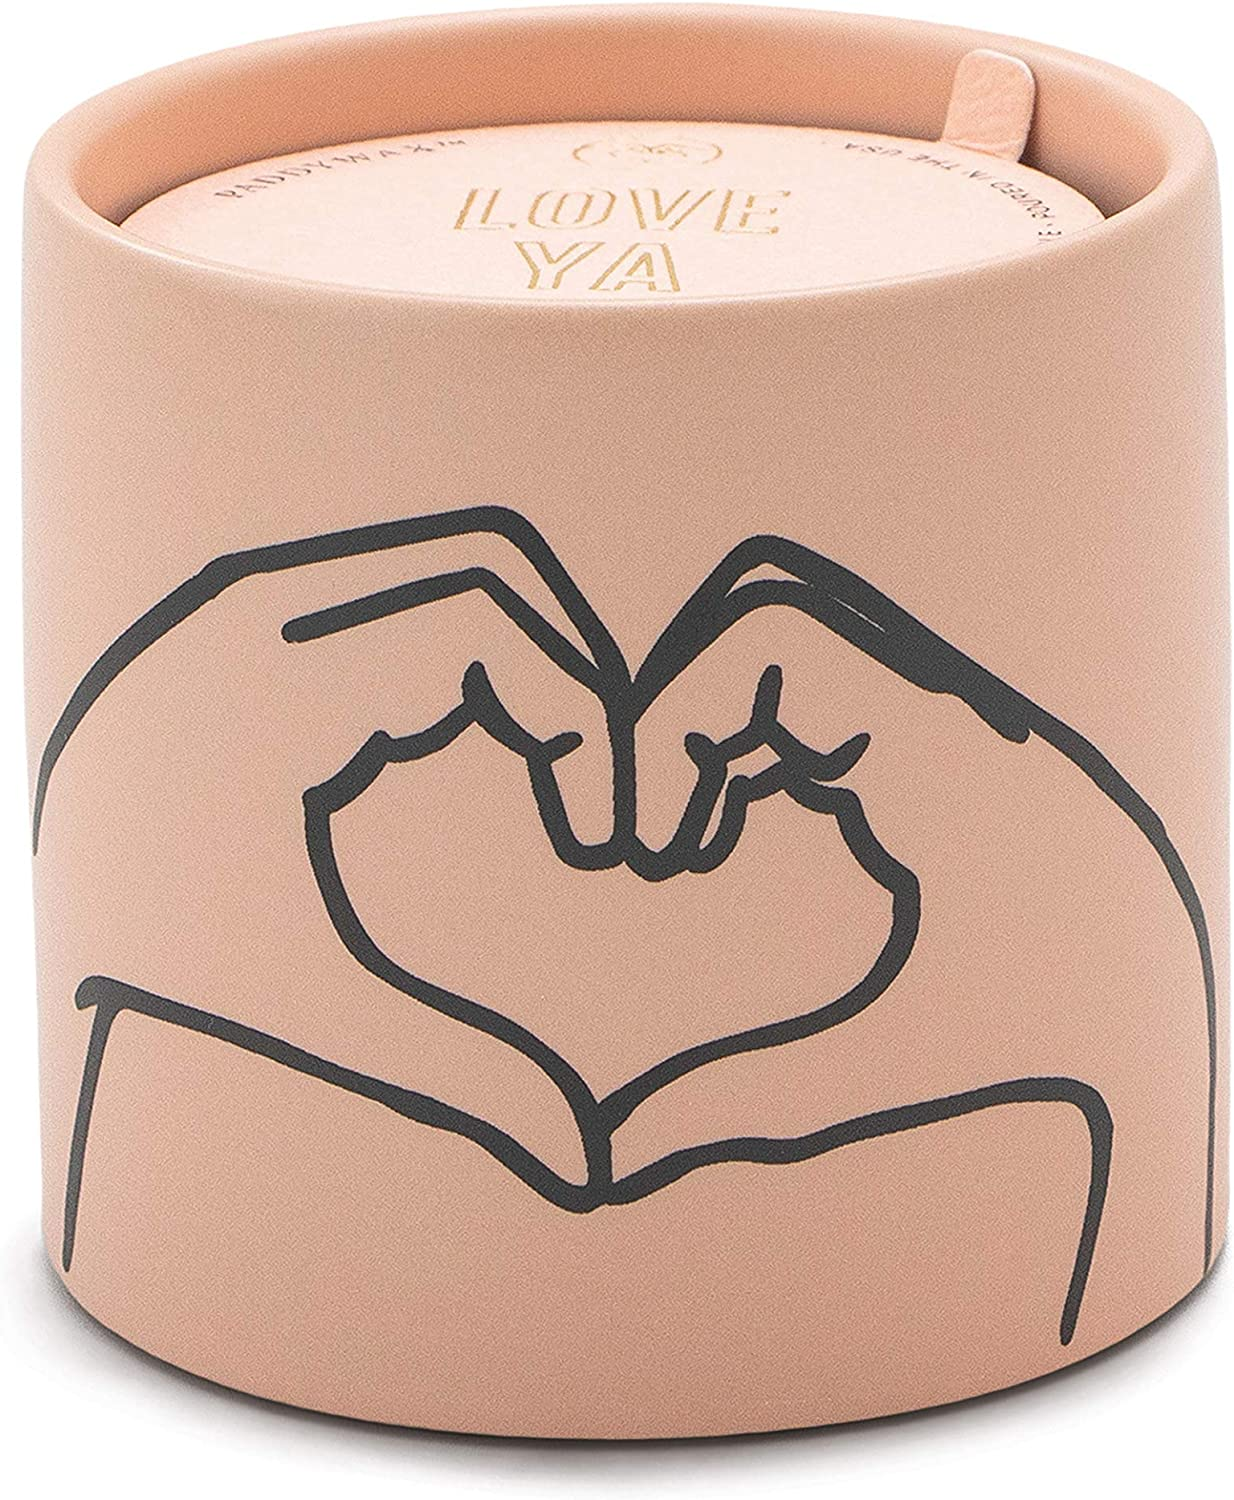 Heart Paddywax Candles Impressions Collection Scented Candle 5.75-Ounce Tobacco /& Vanilla Dusty Pink